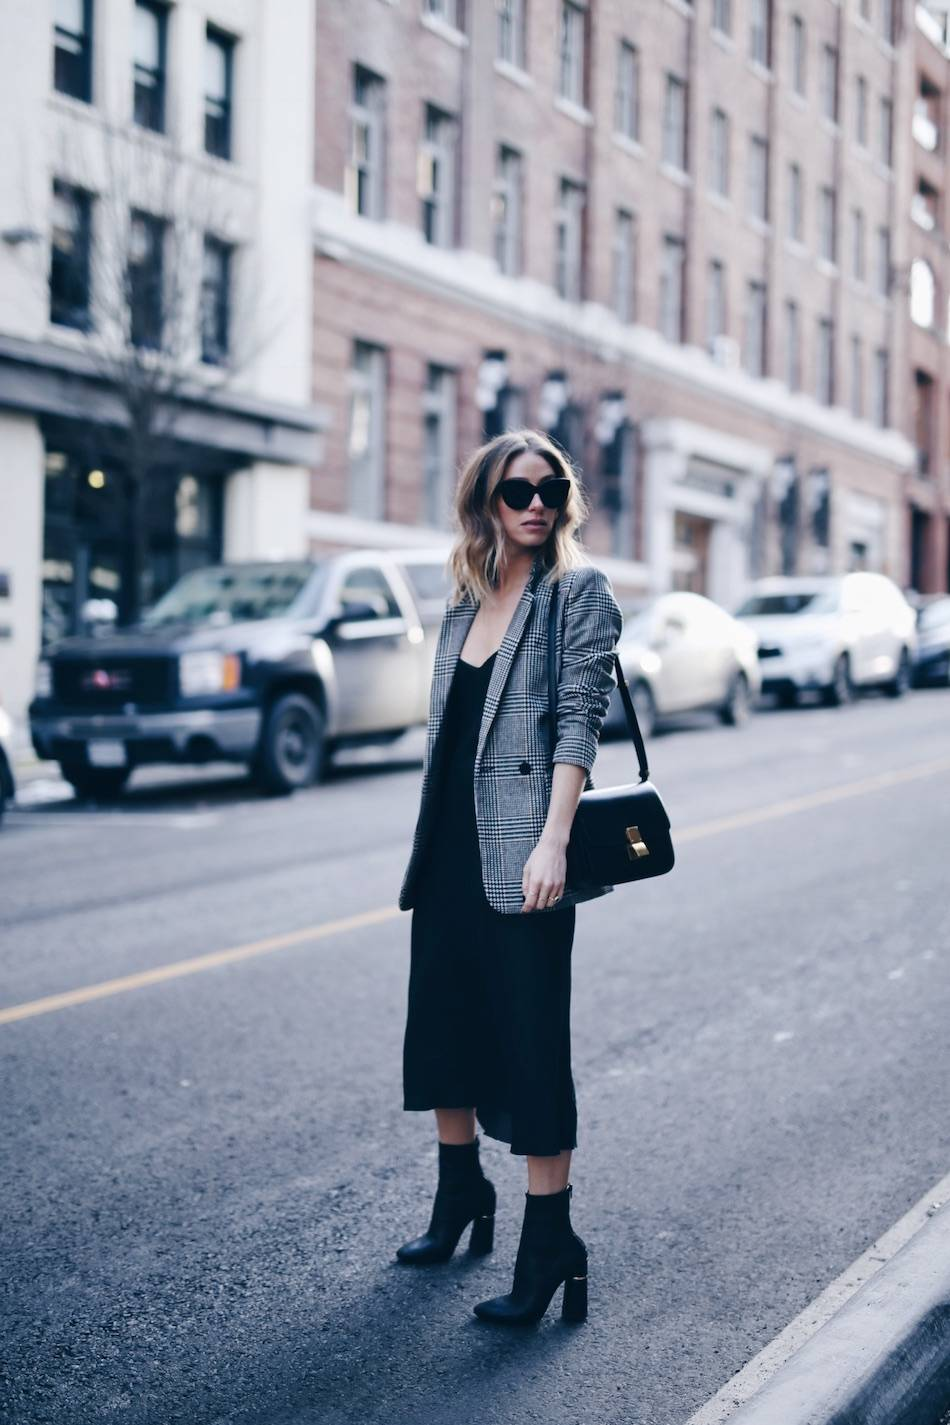 Style and beauty blogger Jill Lansky of The August Diaries on how to wear a slip dress in the winter in John Patrick Organic slip dress, H&M plaid boyfriend blazer, Celine accessories